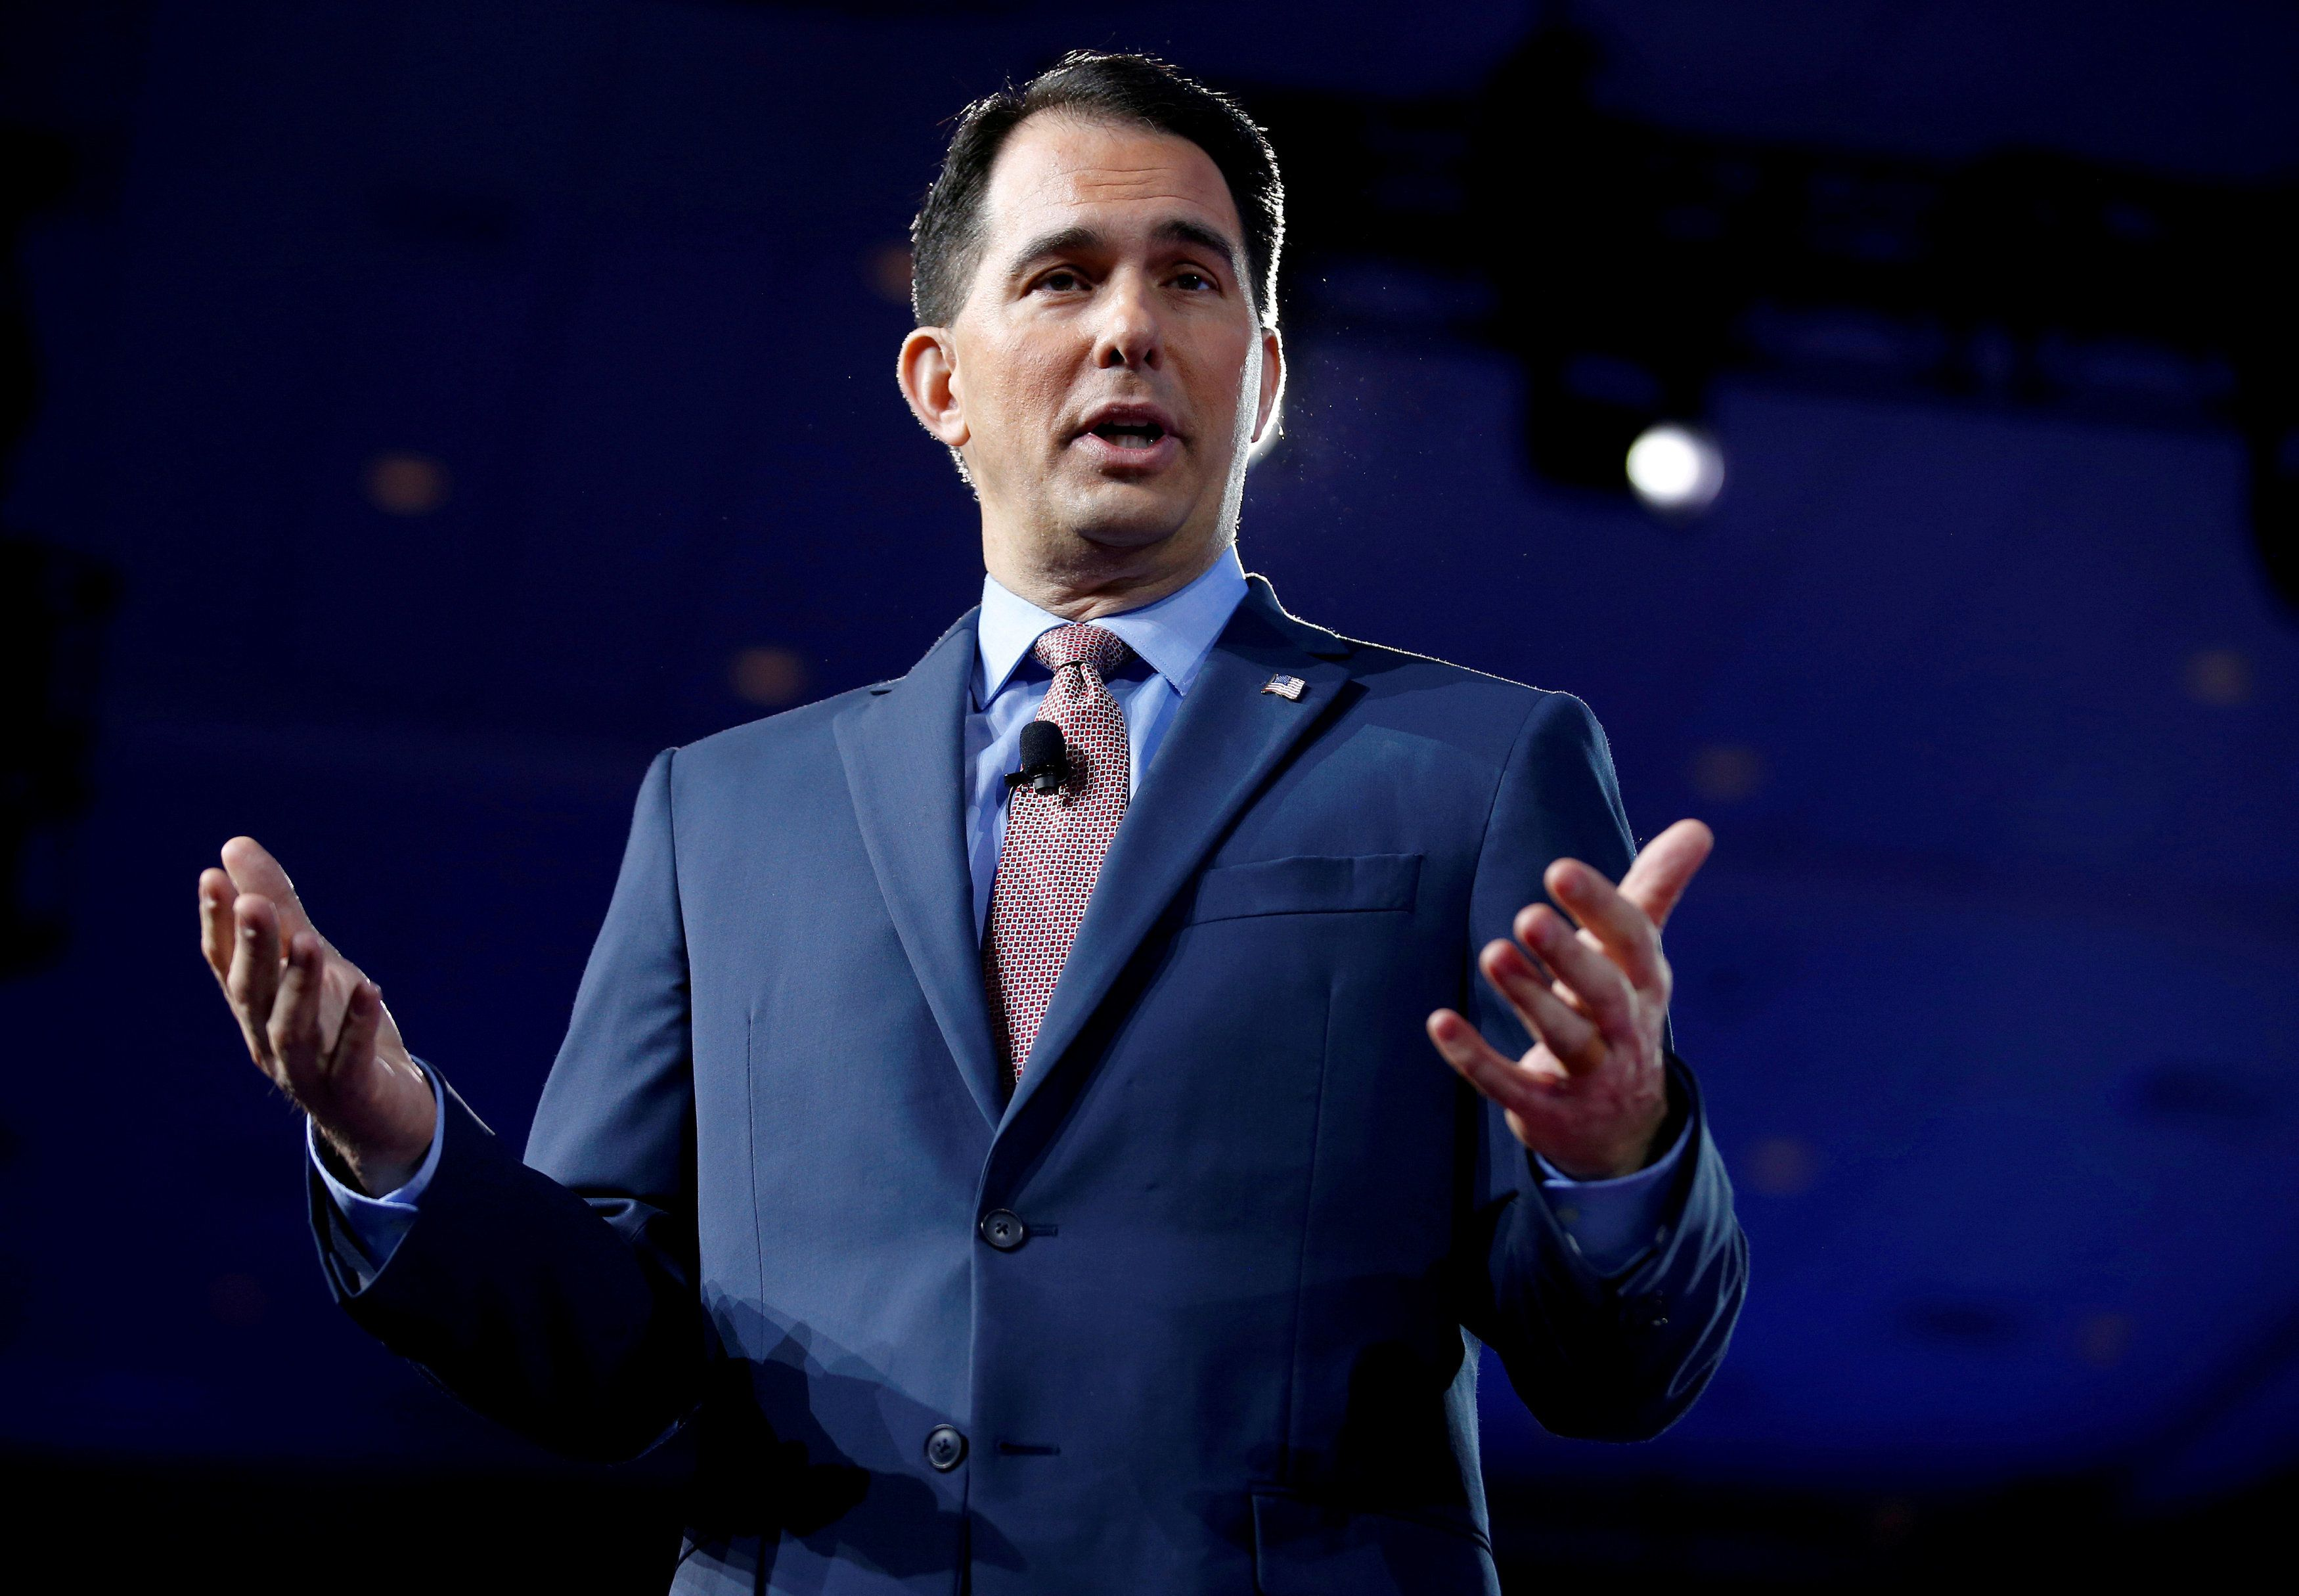 FILE PHOTO:  Wisconsin Governor Scott Walker speaks during the Conservative Political Action Conference (CPAC) in National Harbor, Maryland, U.S., February 23, 2017. REUTERS/Joshua Roberts/File Photo